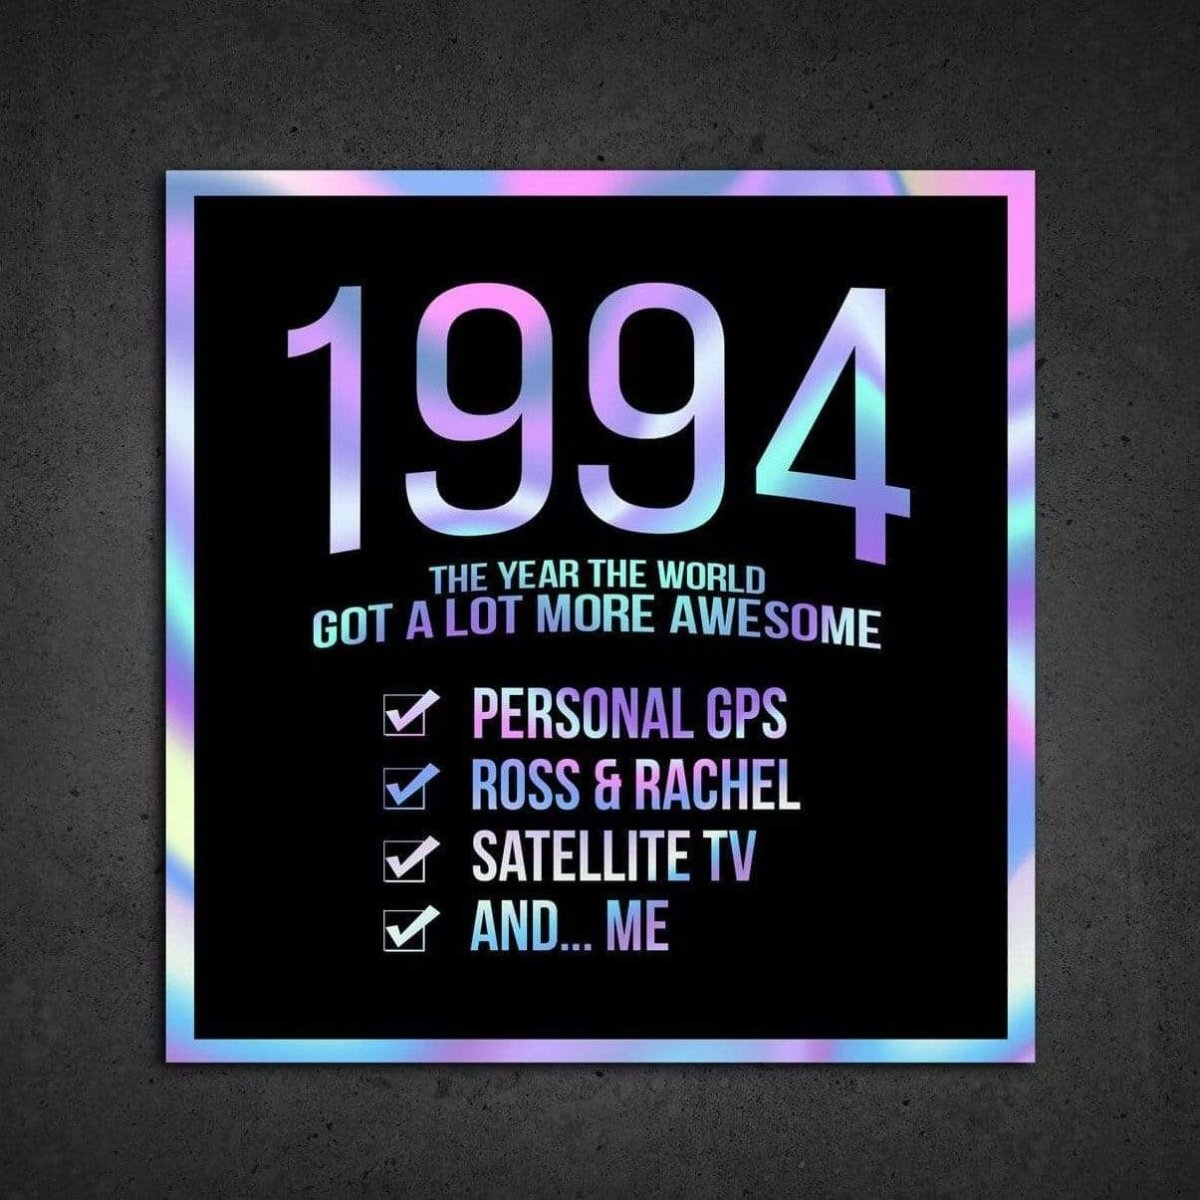 1994! Hologram Birth Year Sticker - Dan Pearce Sticker Shop